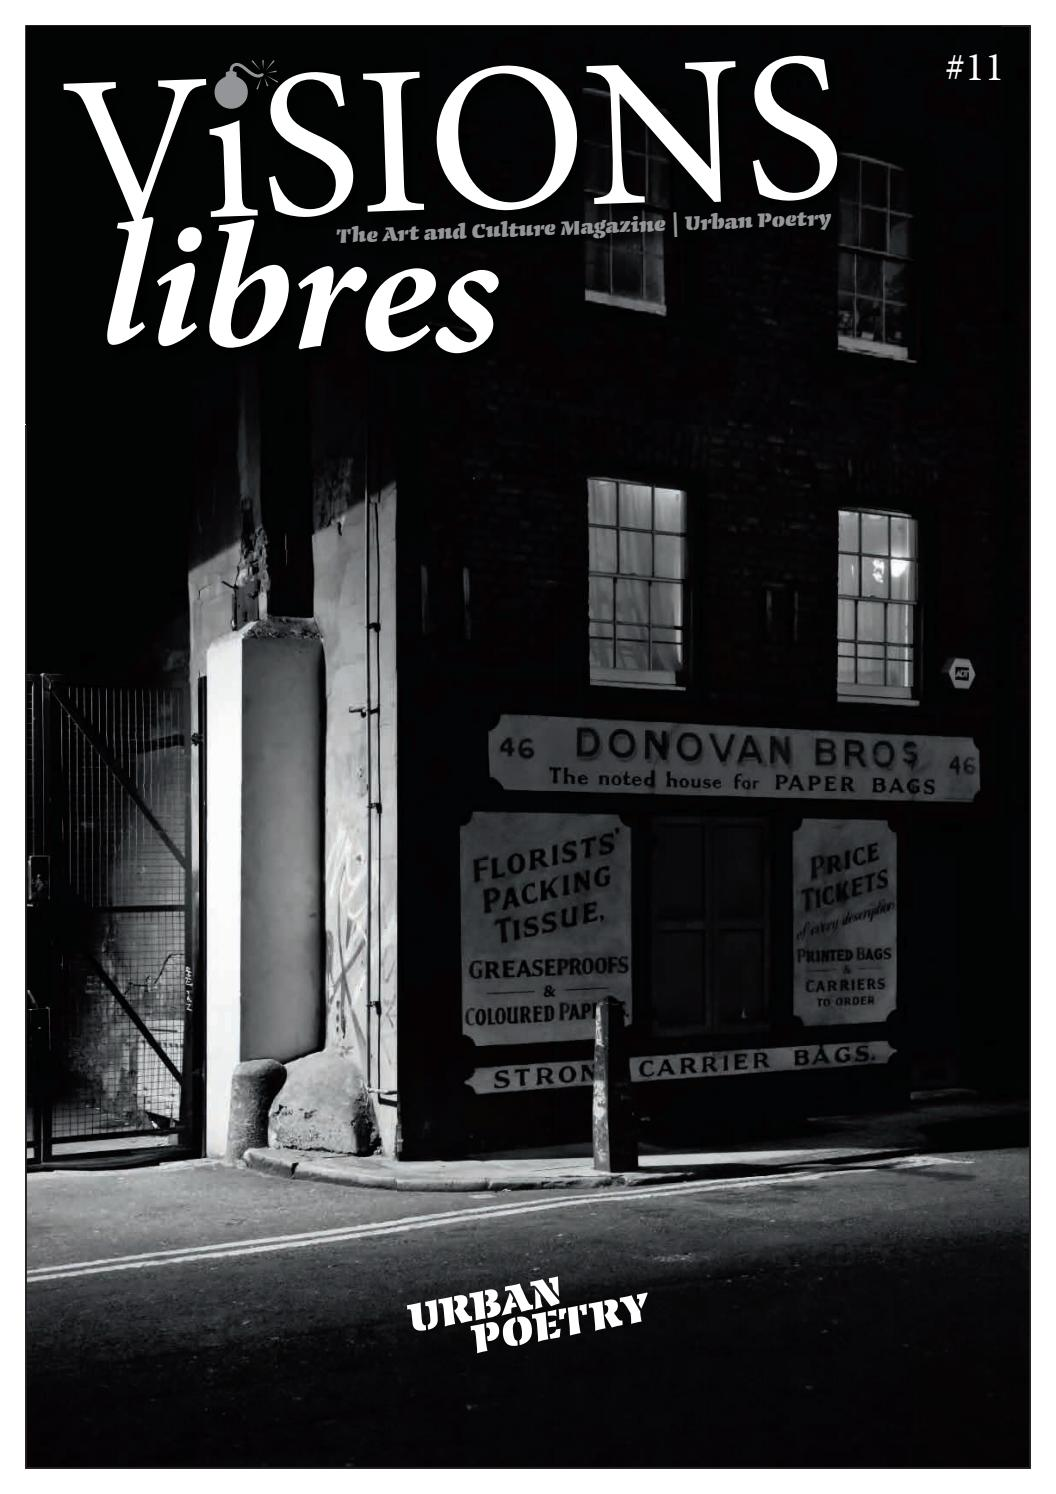 Visions Libres Urban Poetry By Louisa Dawn / Visions Libres   Issuu